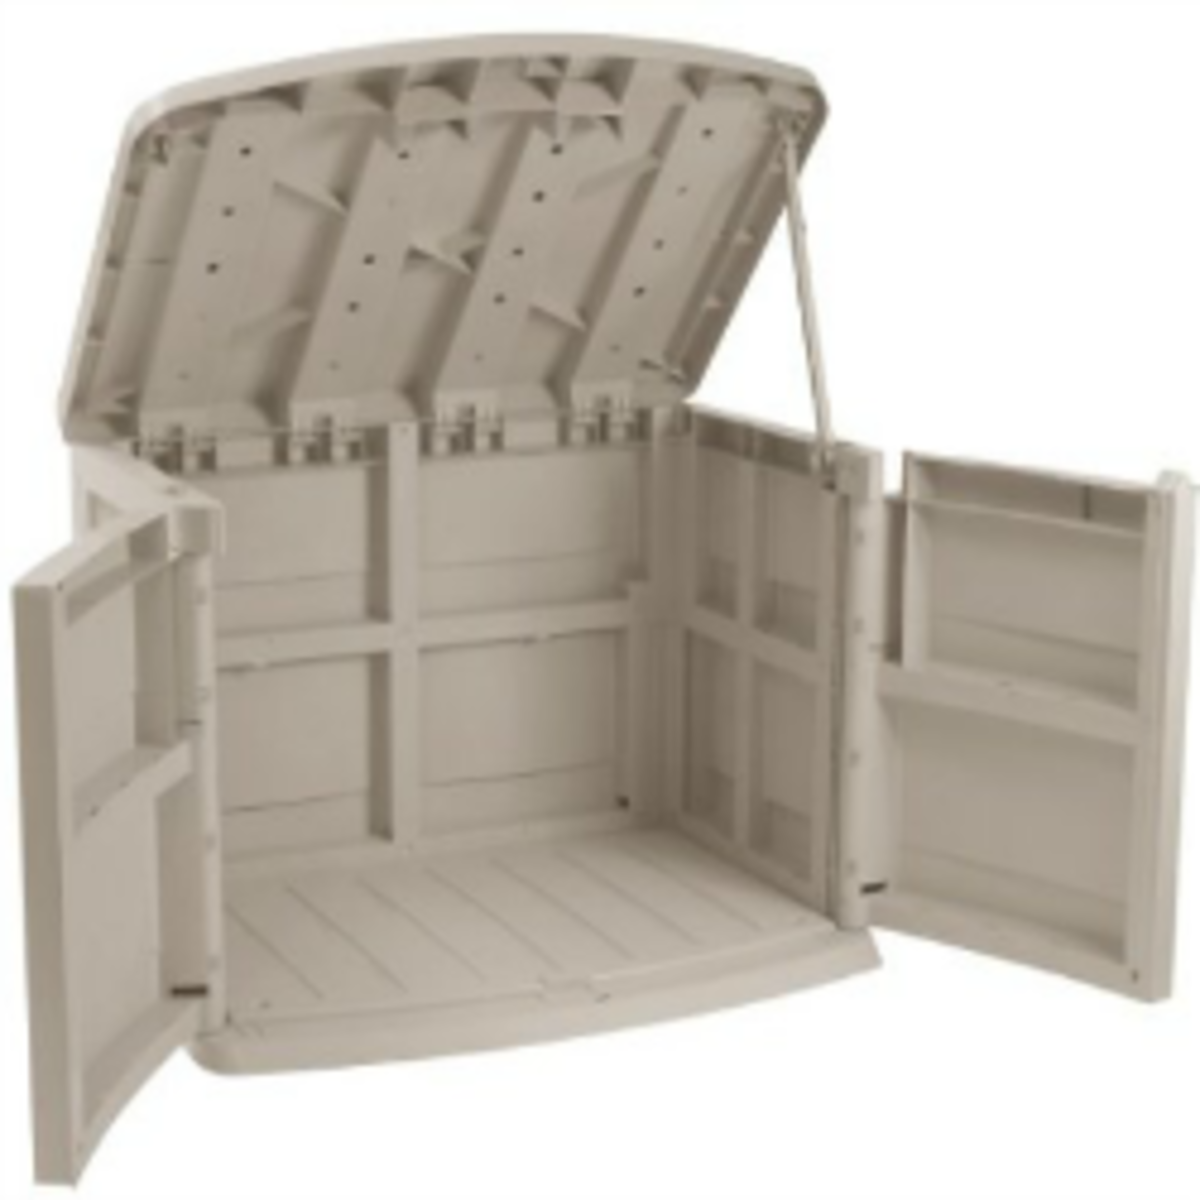 Best Outdoor Shed For Portable Generator | hubpages